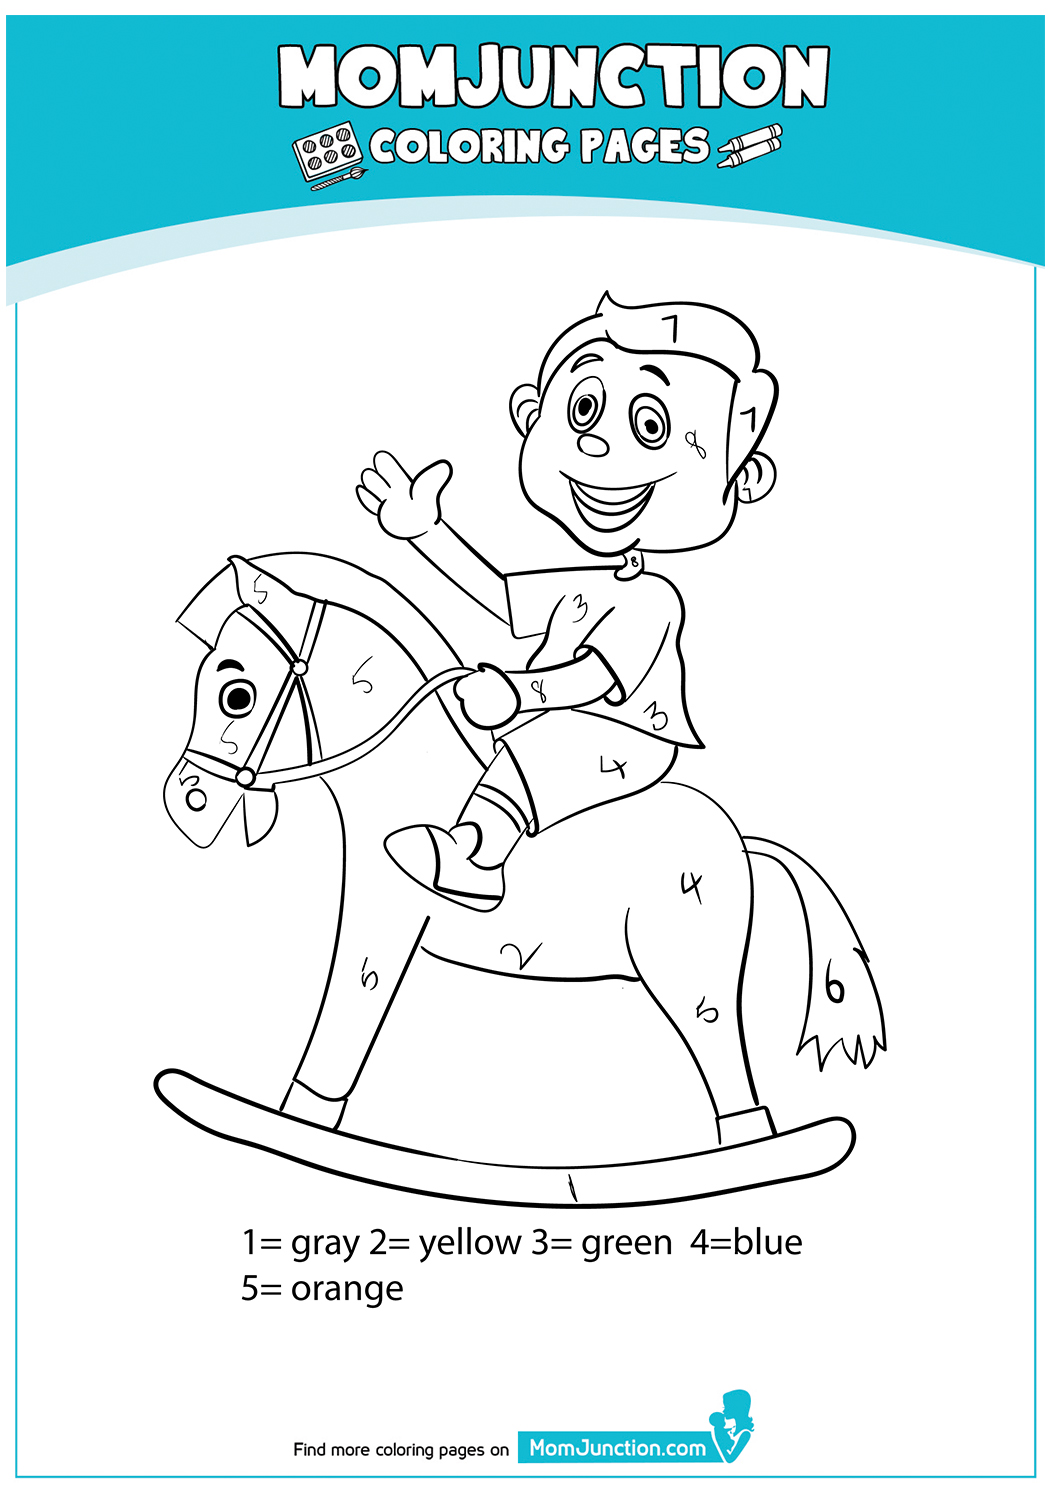 Child-Playing-With-Toy-Horse-17